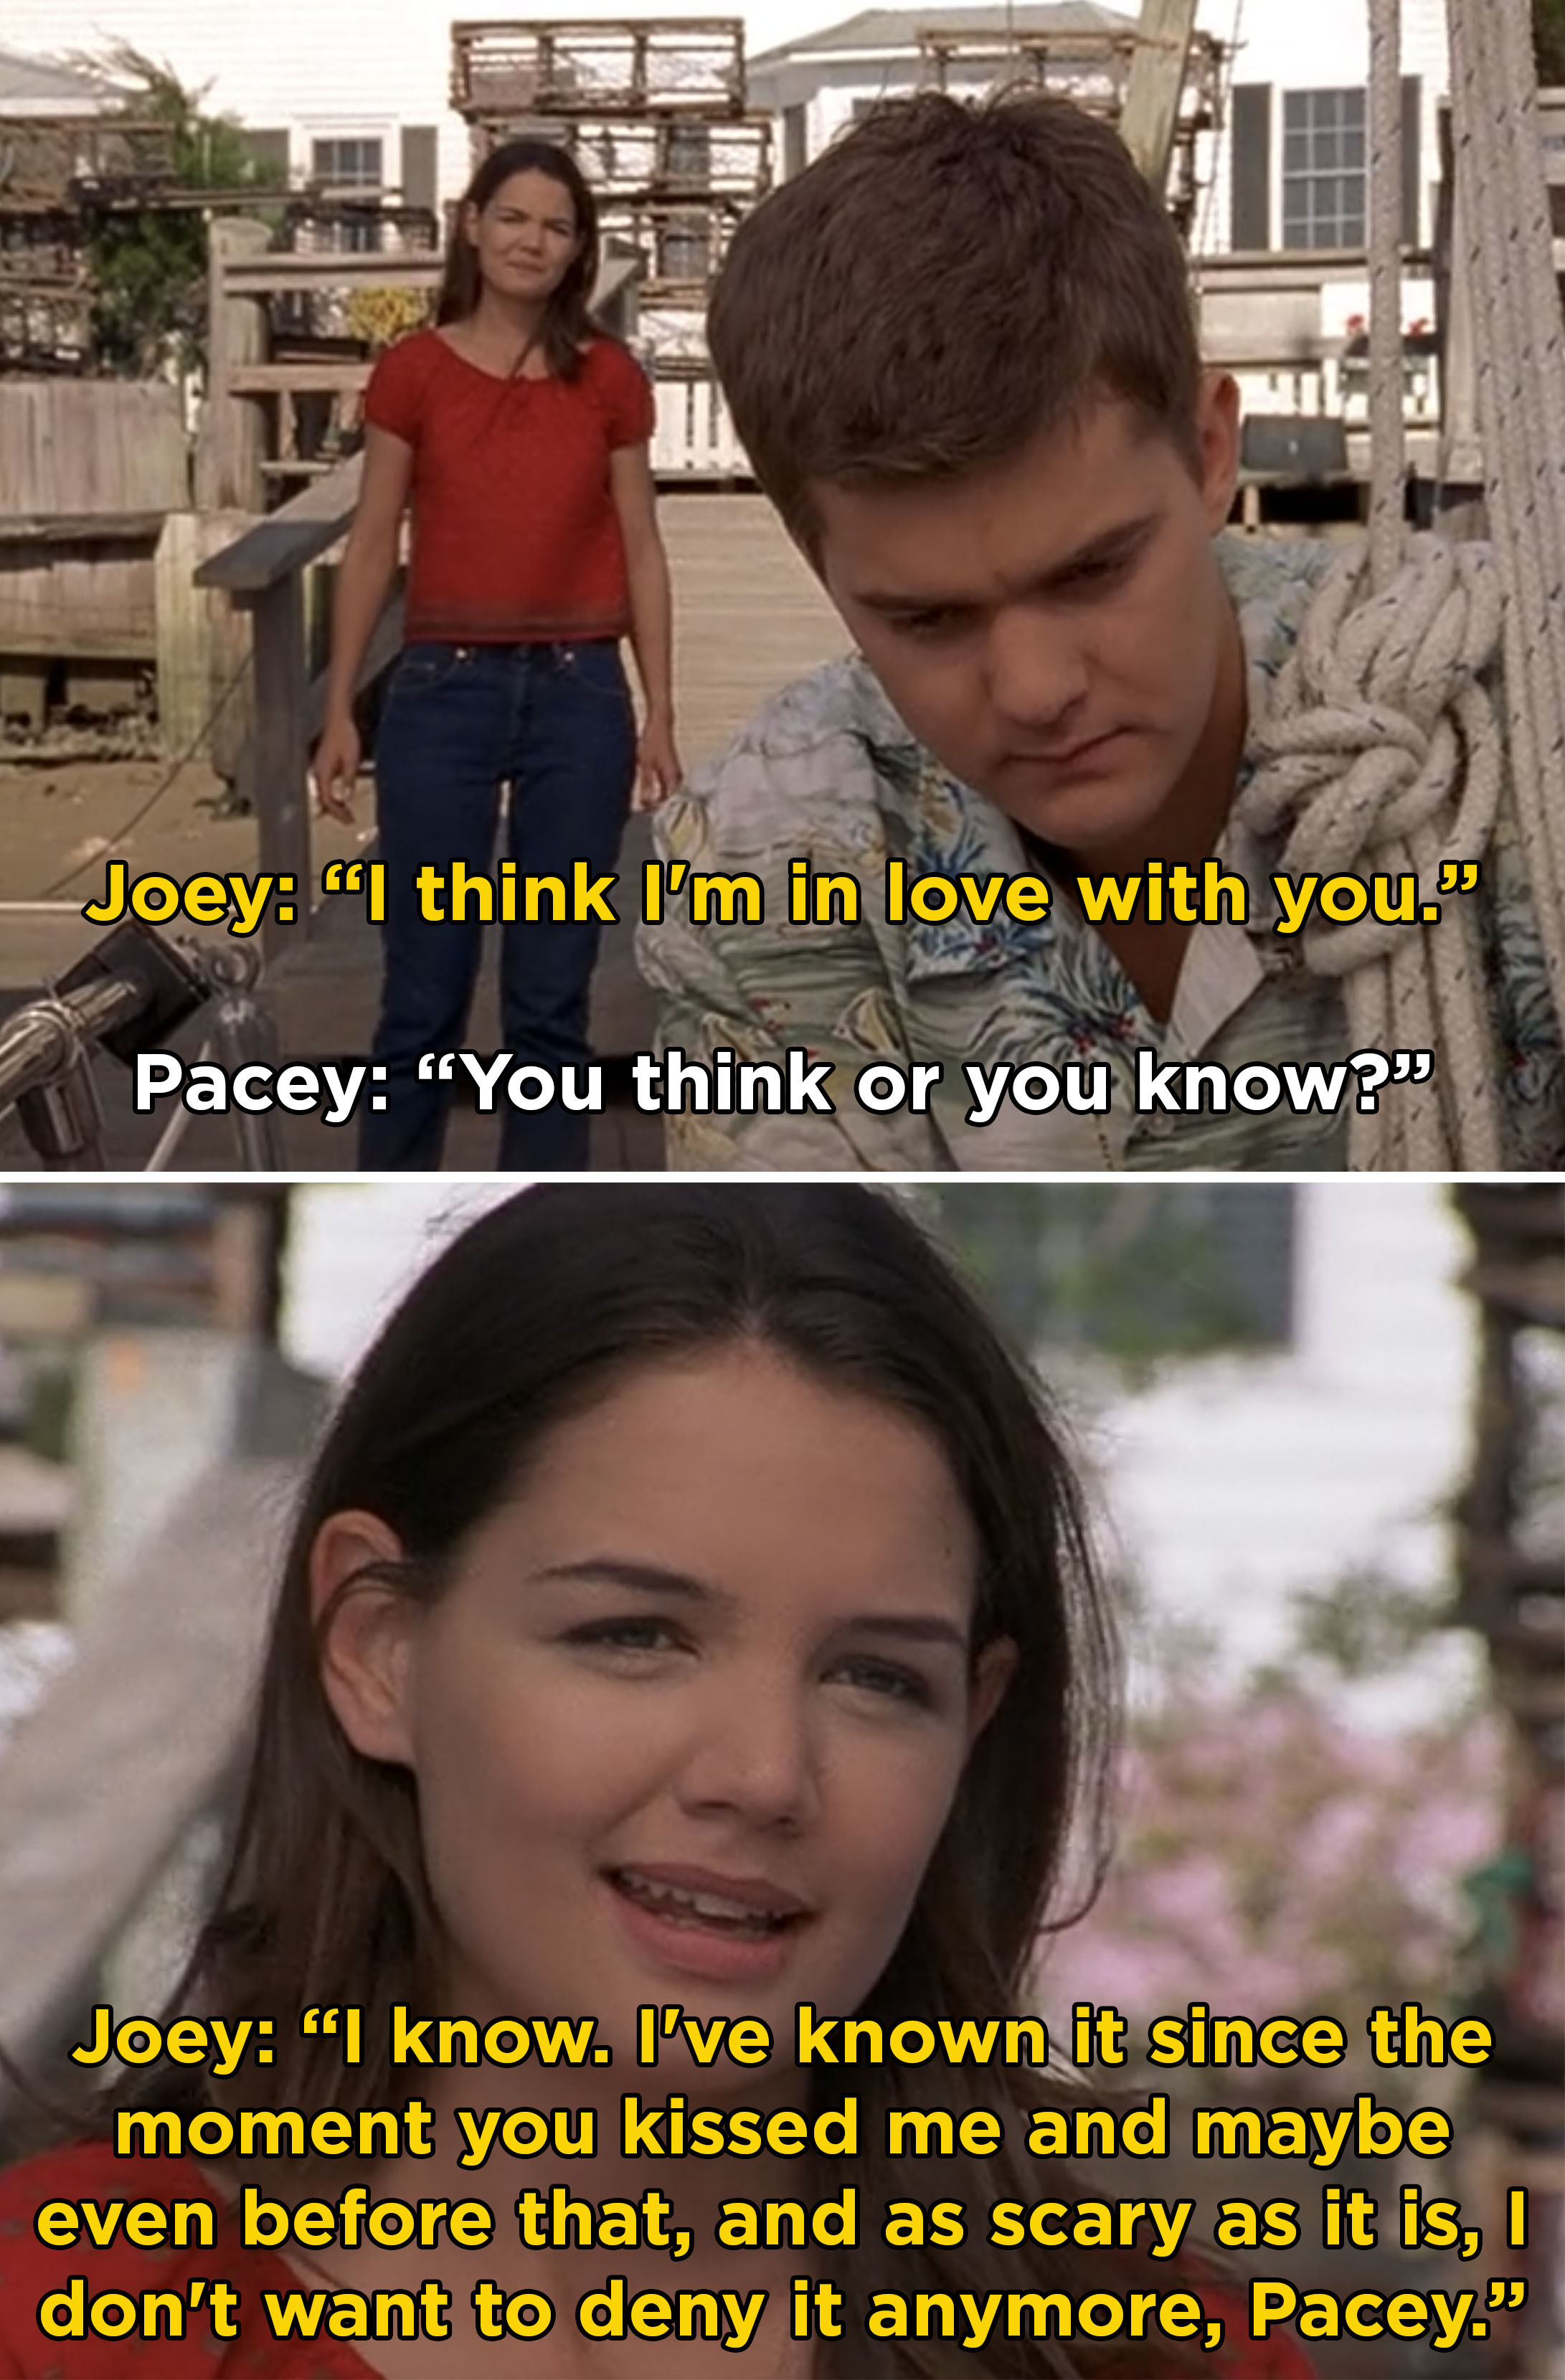 """Joey telling Pacey, """"I think I'm in love with you. I know. I've know it since the moment you kissed me and maybe even before that"""""""